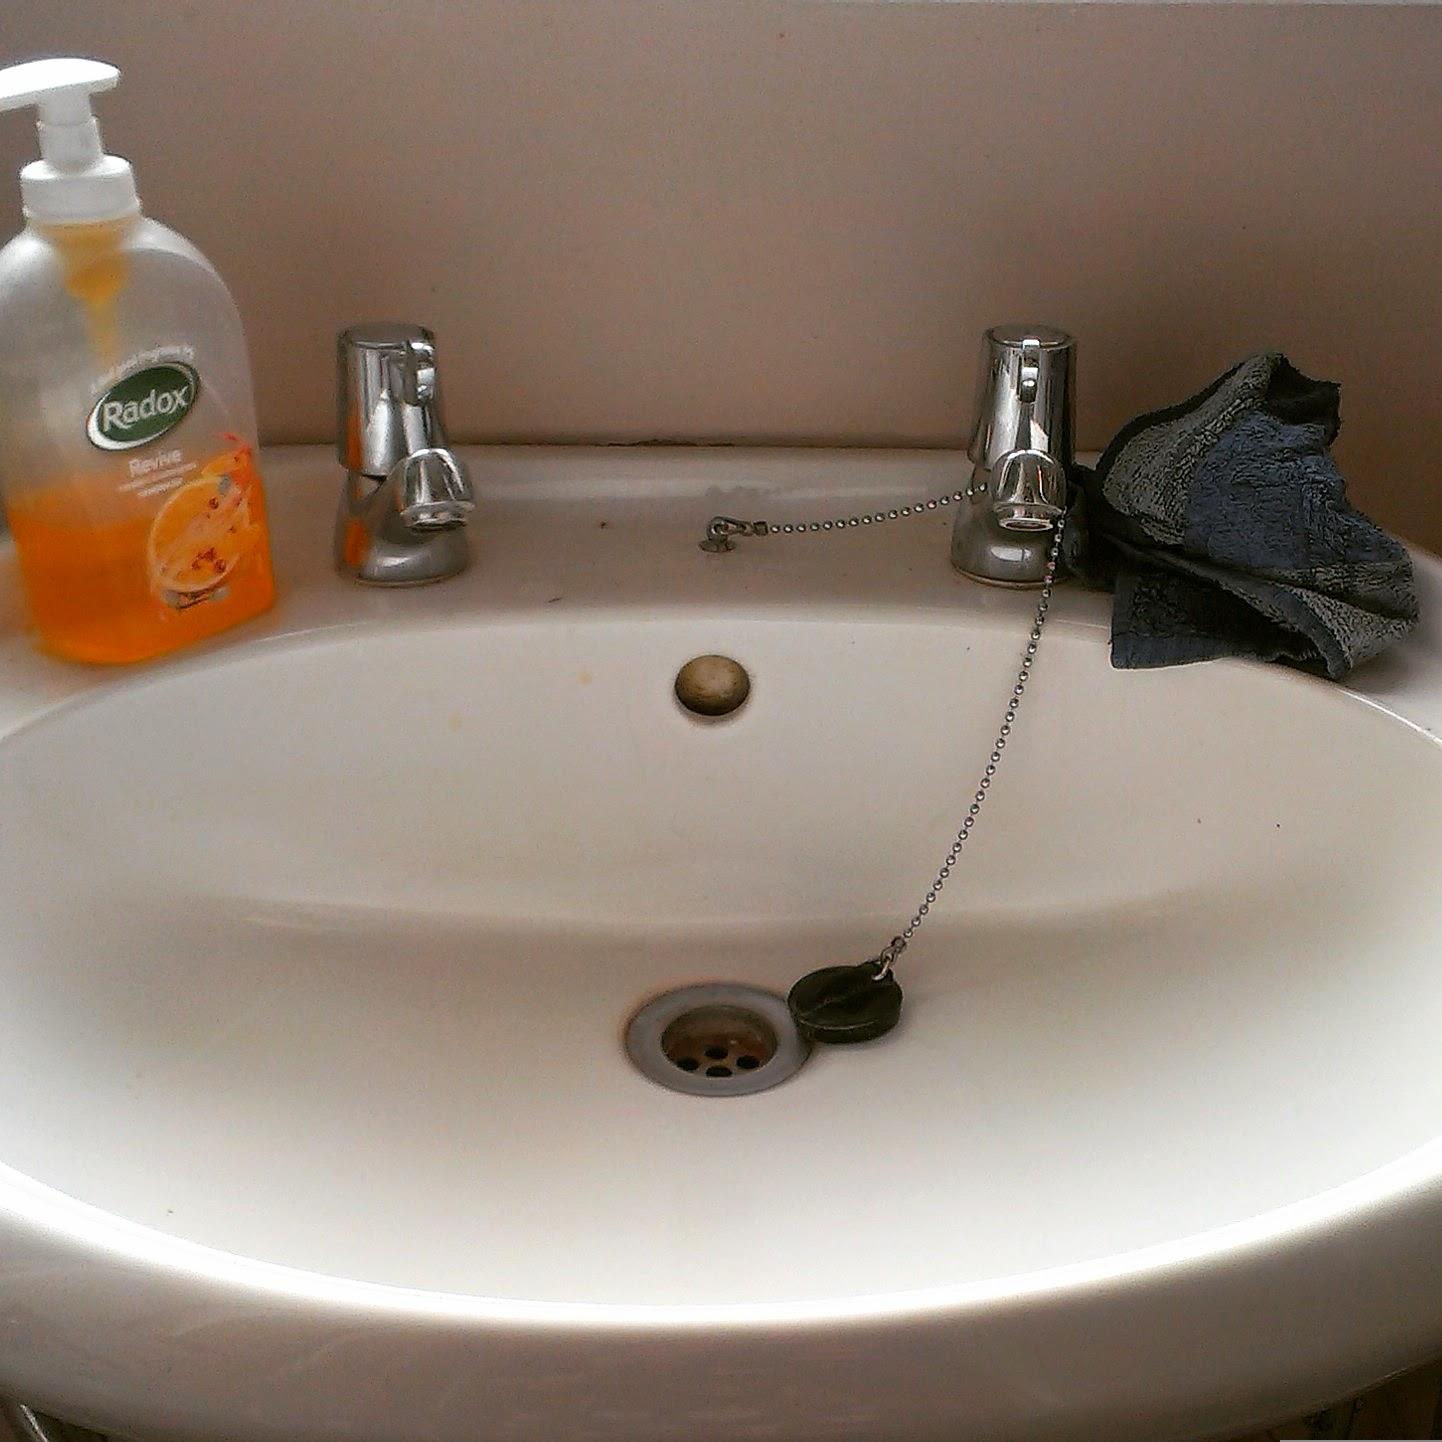 2pm - bathroom cleaning